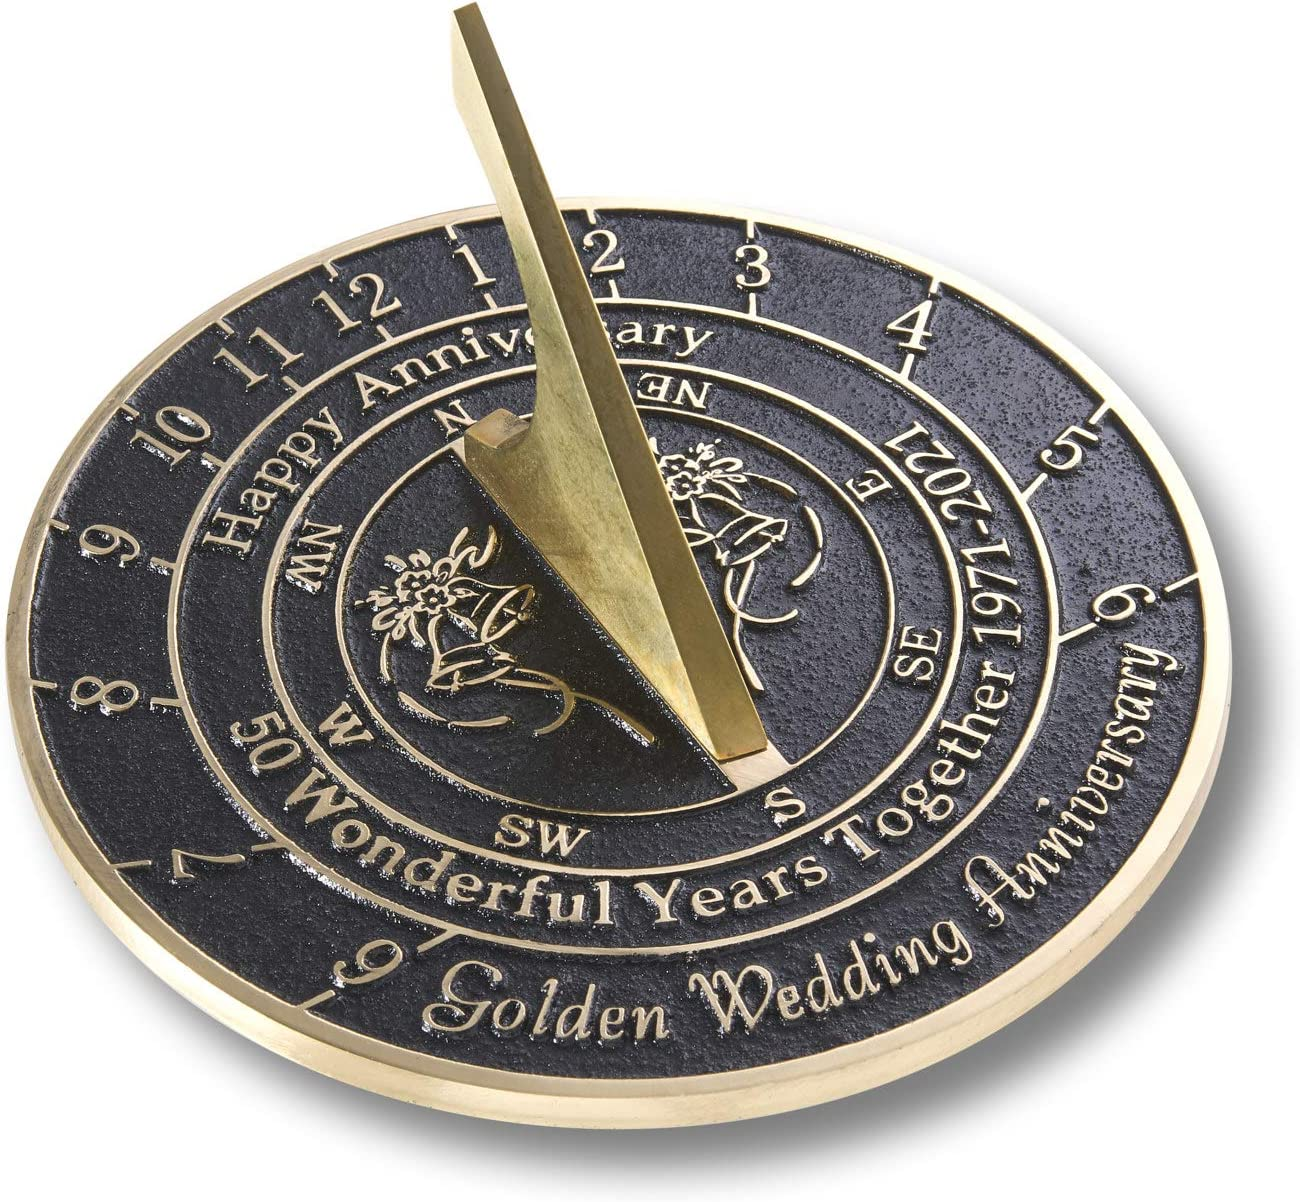 The Metal Foundry 50th New item Golden G Max 53% OFF Wedding Anniversary 2021 Sundial